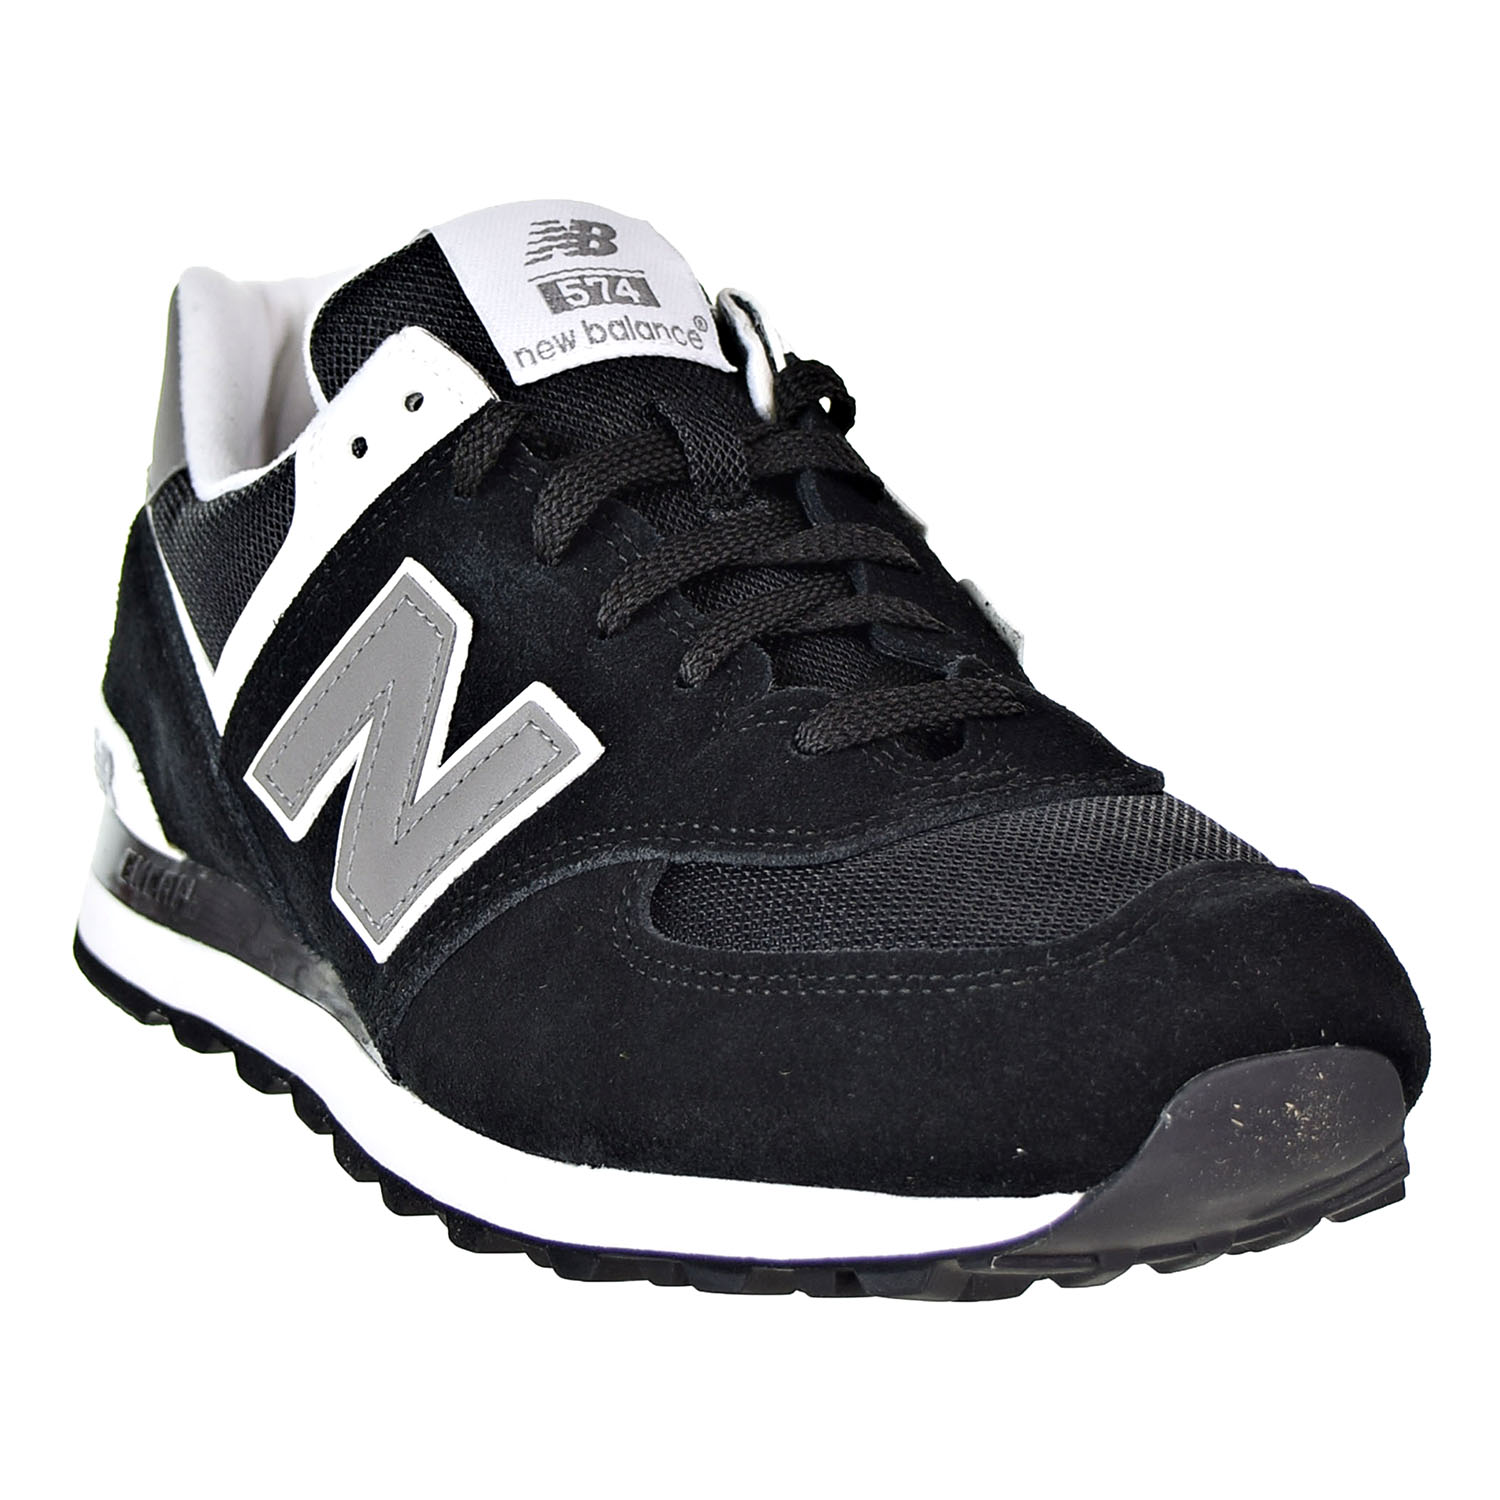 super popular ea23b 26aee Details about New Balance 574 Men's Shoes Black/Grey/White M574-SKW